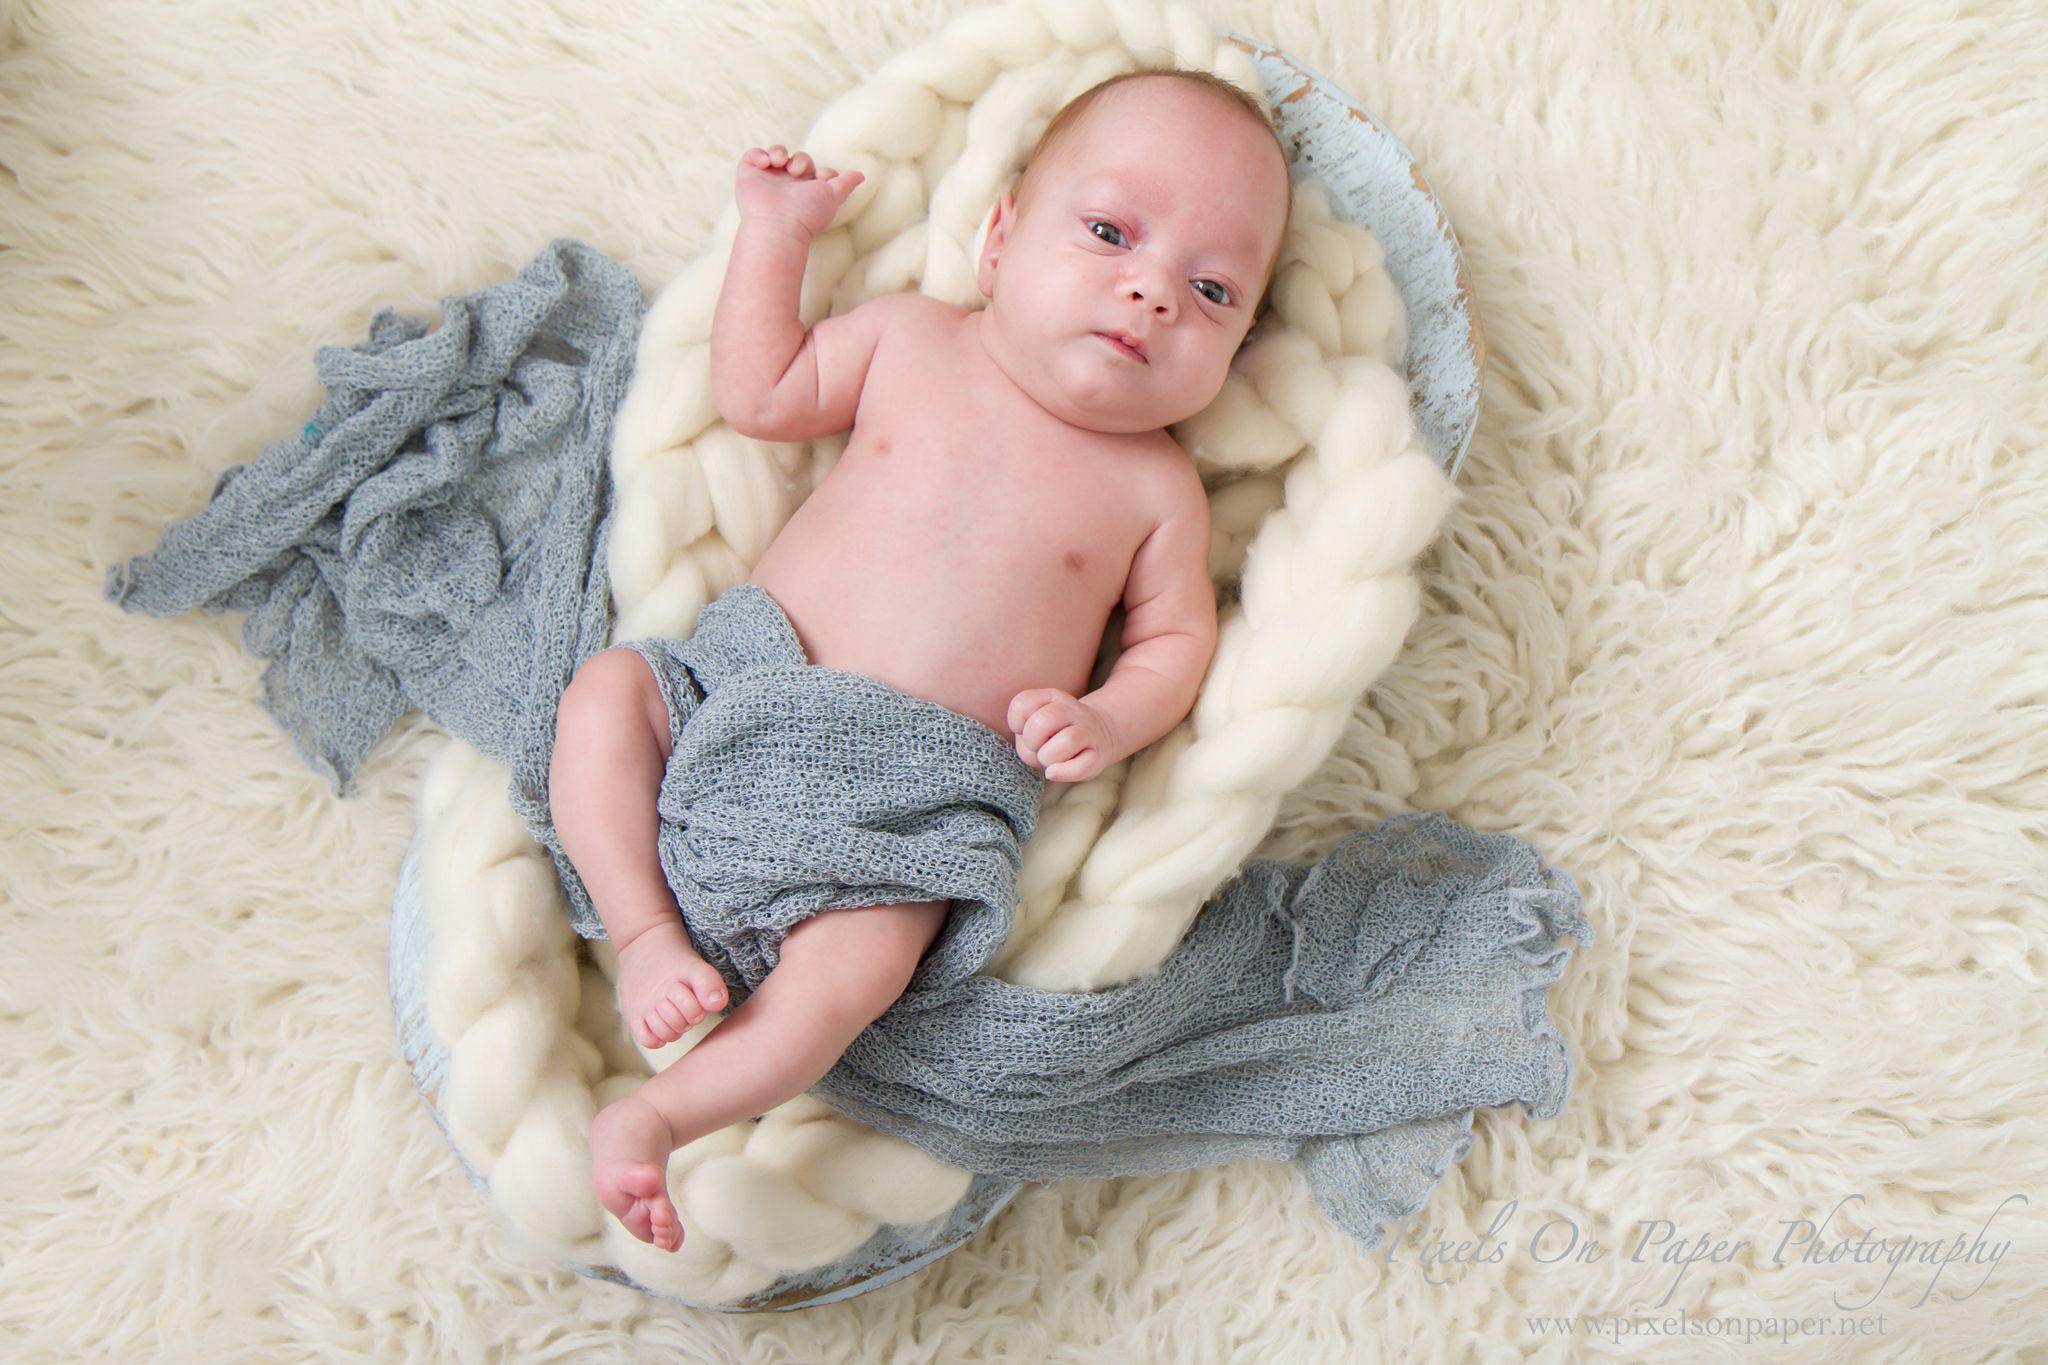 Tucker Matherly Newborn Photography by Pixels On Paper Portrait Photography photo